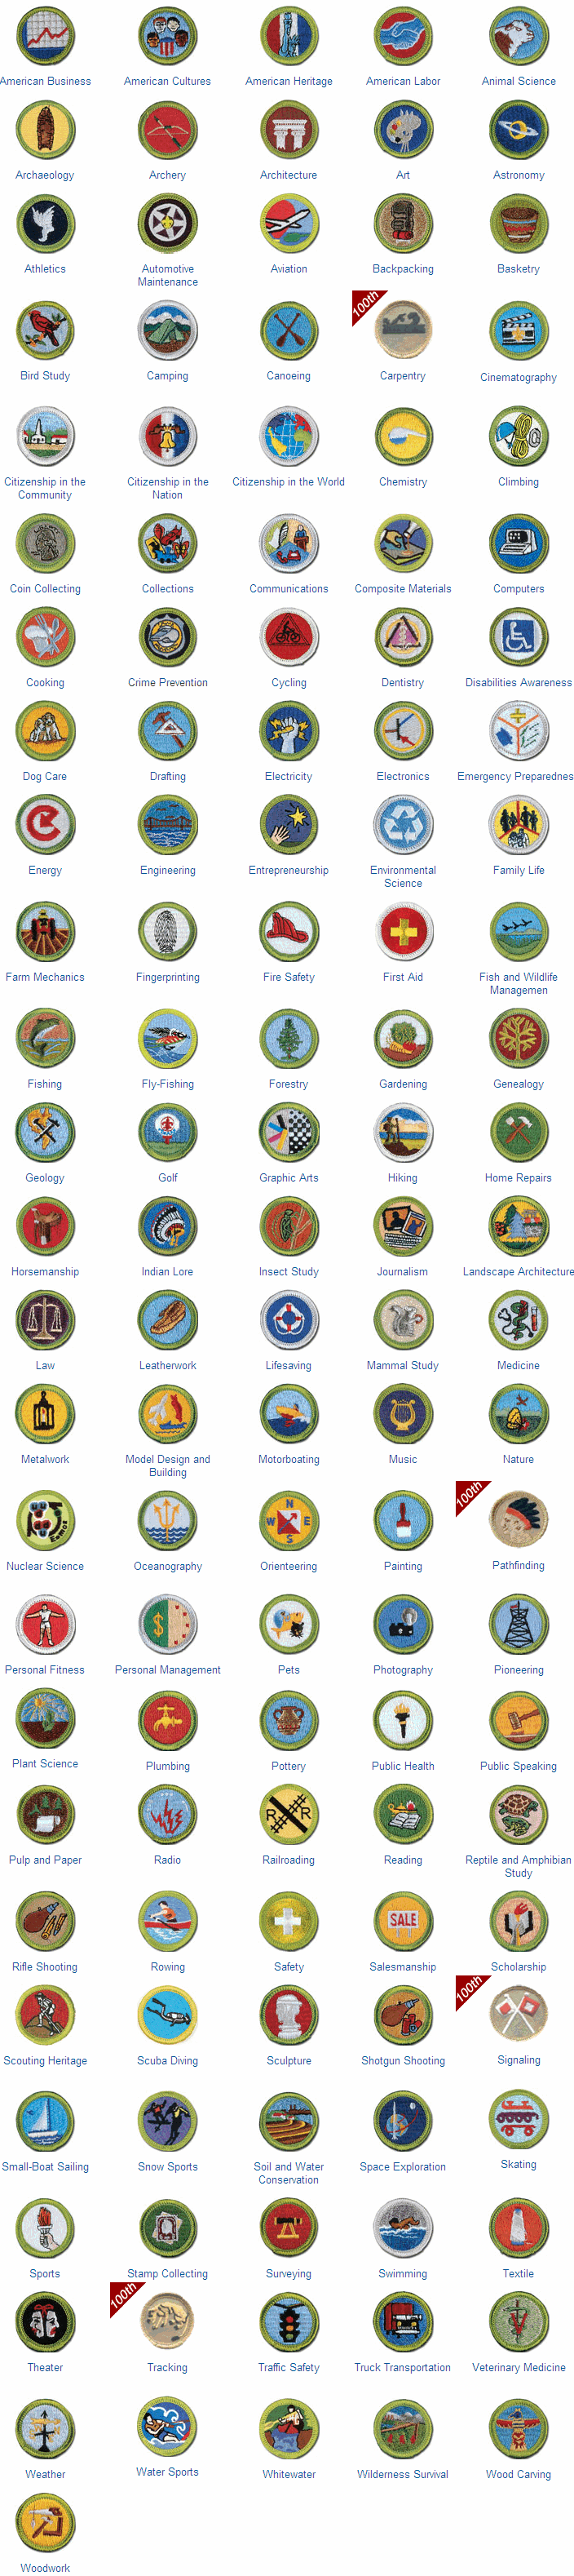 worksheet Snow Sports Merit Badge Worksheet list of merit badges 2010 great collection and names names